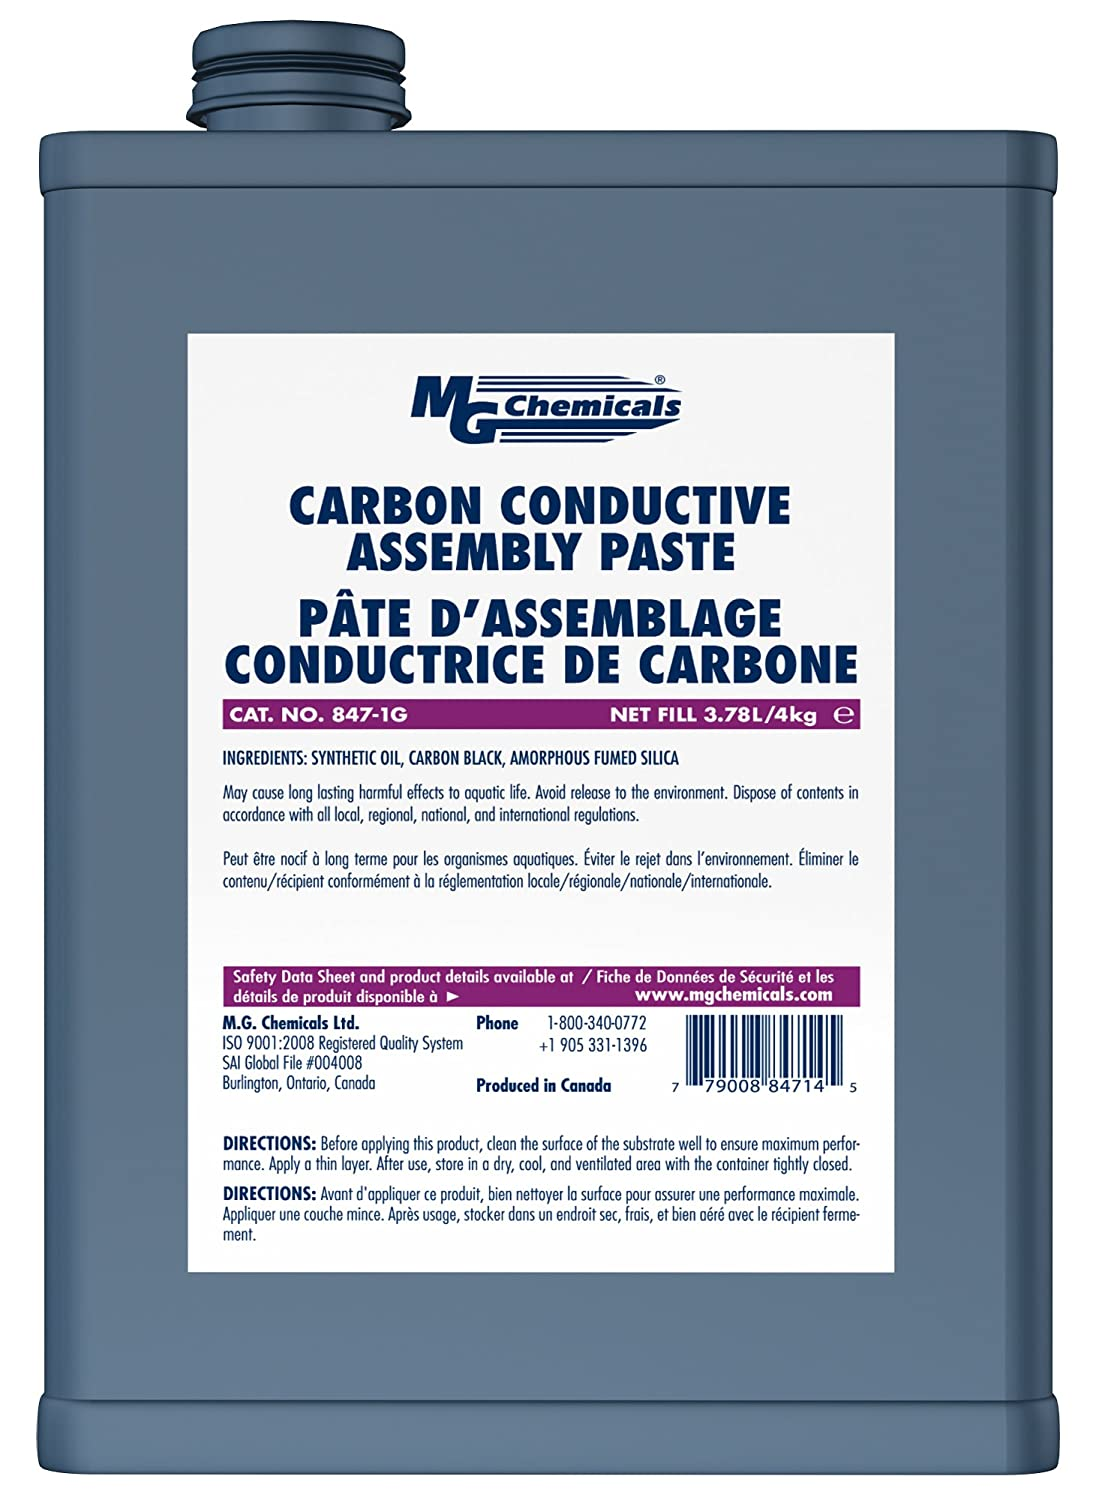 MG Chemicals Carbon Conductive Assembly Paste, 1 gal Can